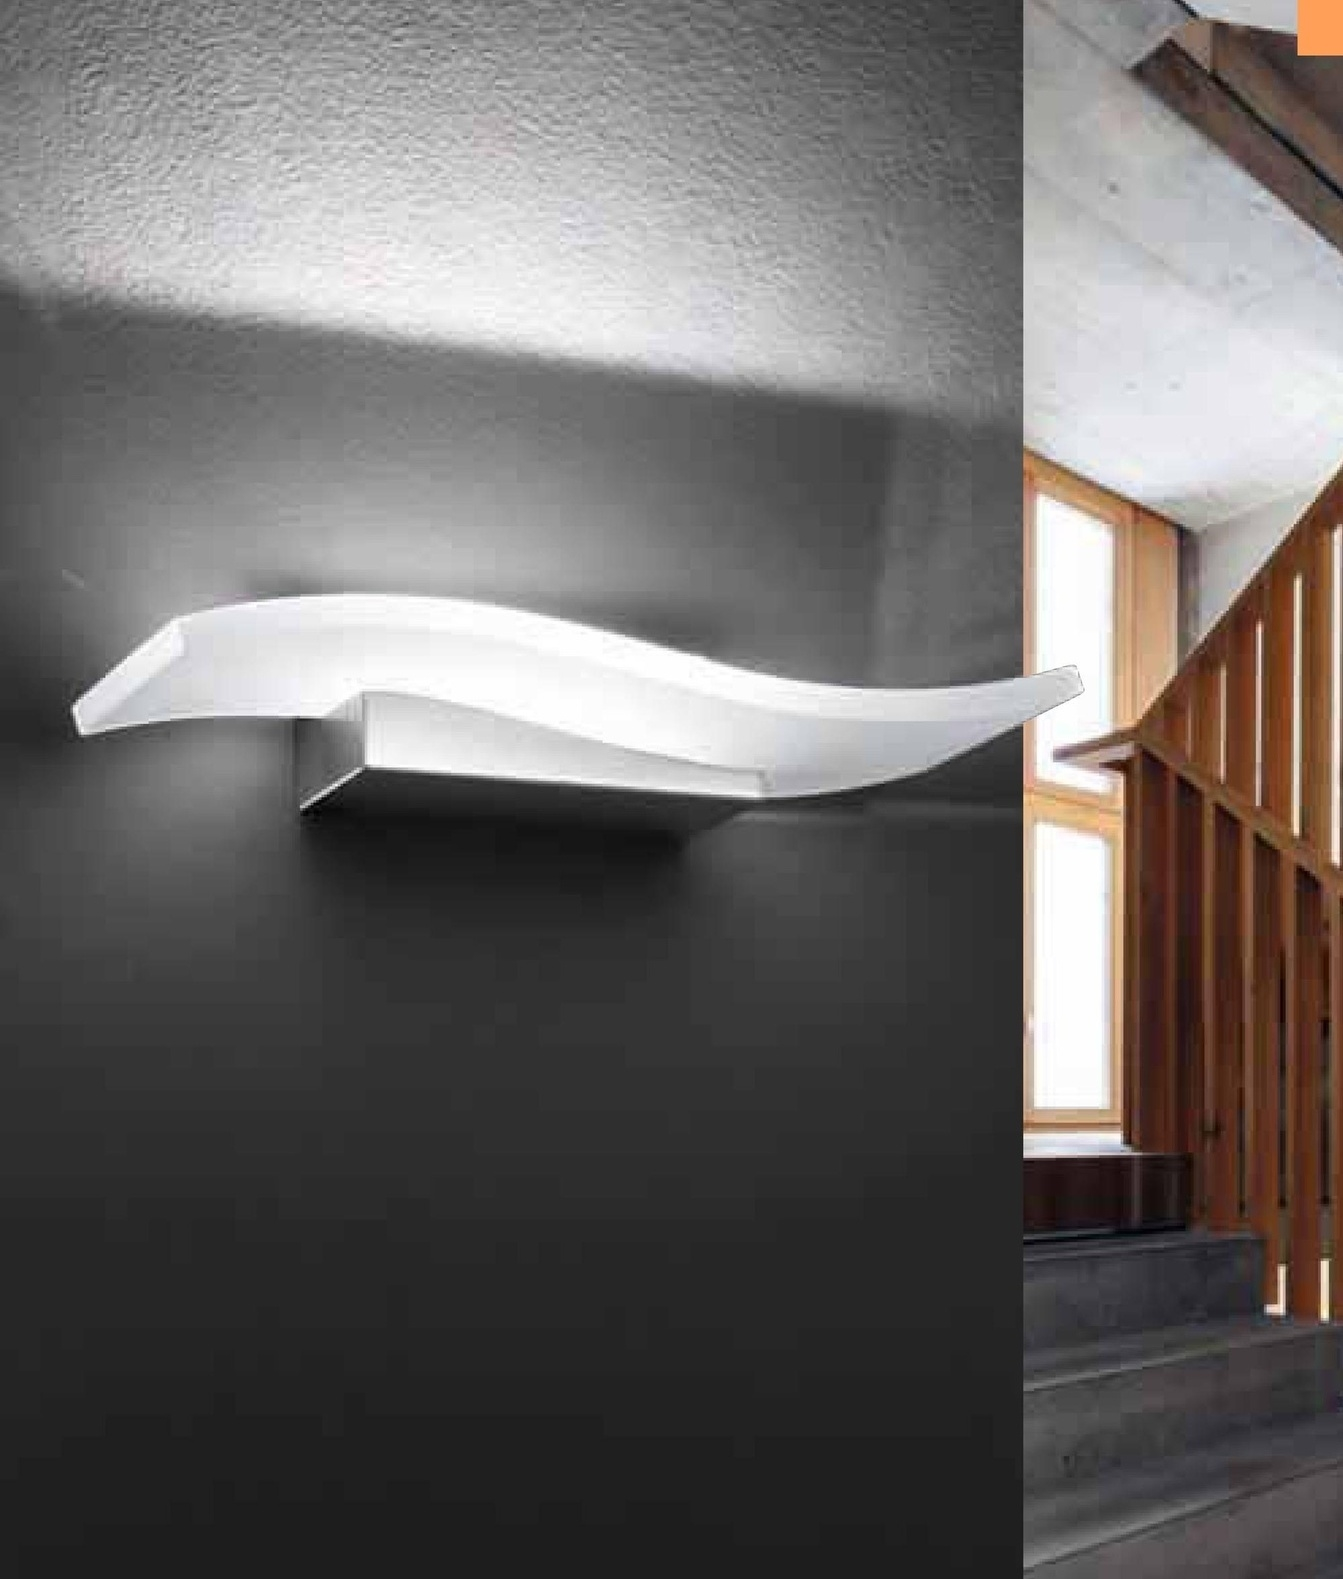 Curved white glass led wall light for Curved wall